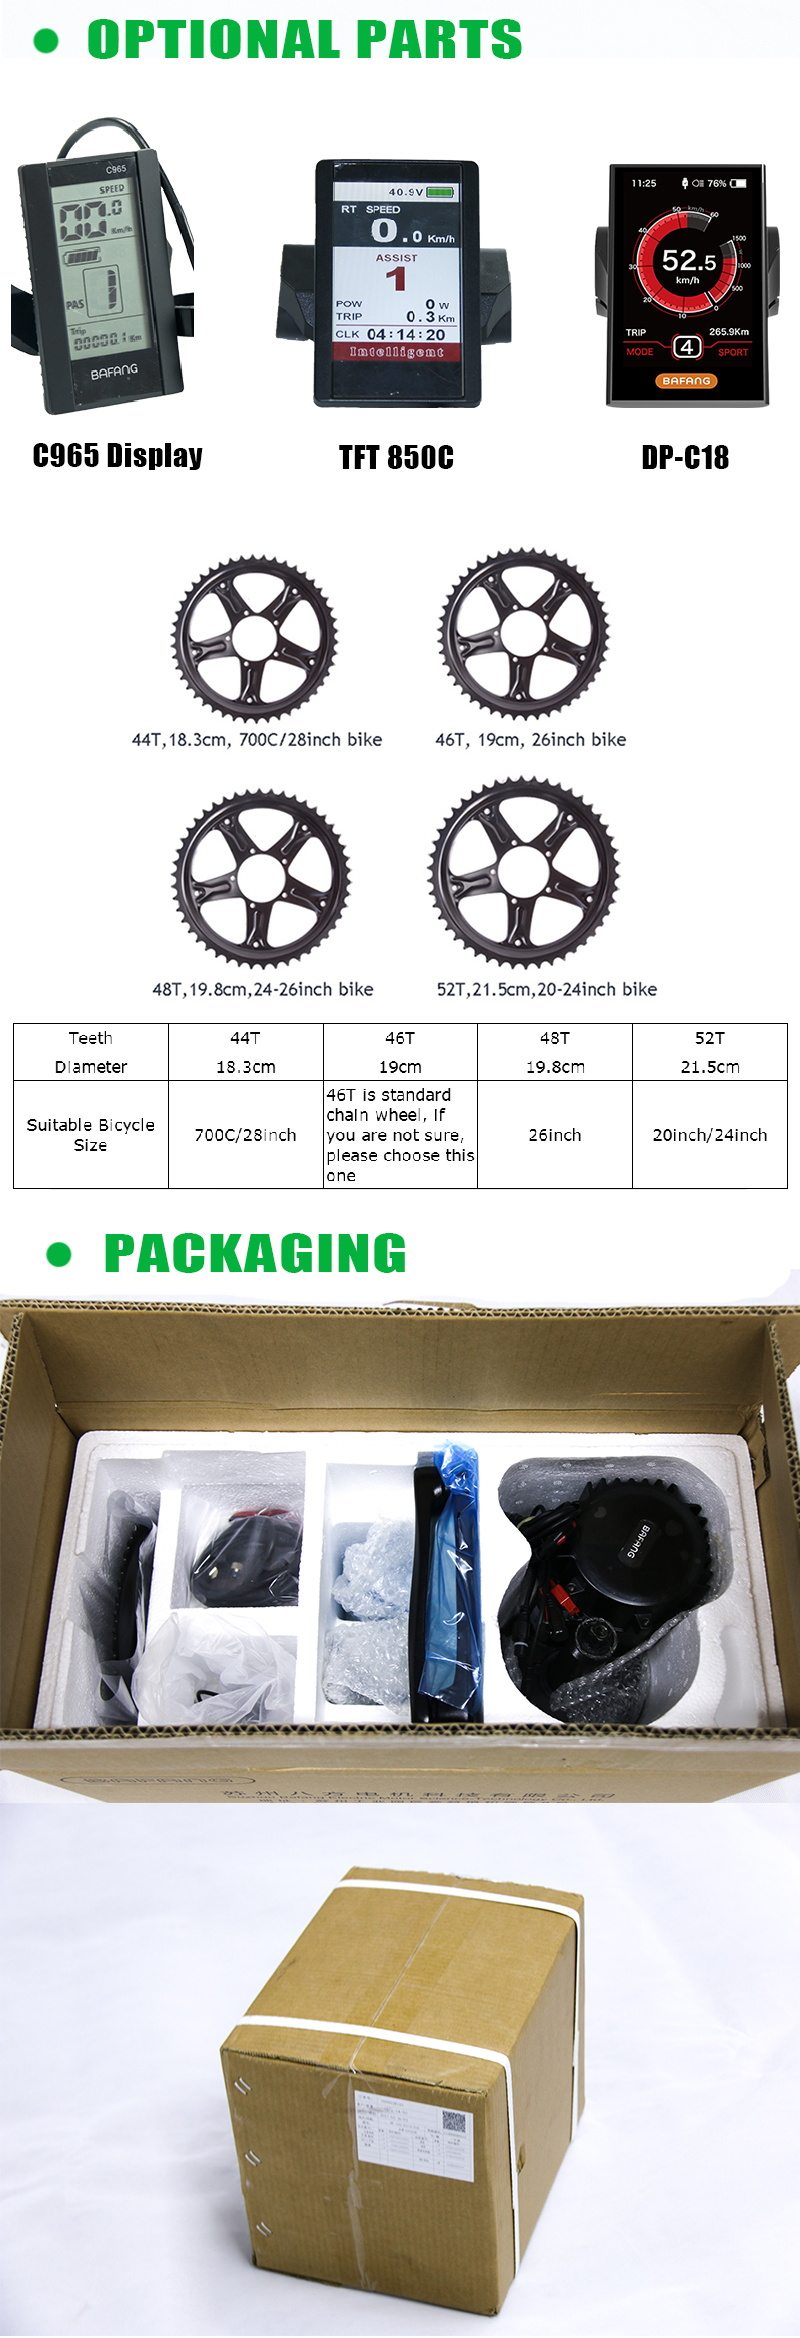 Excellent Bafang Mid Drive Kit Electric Motor 36V 500W Bafang BBS02 Motor E-bike Kit with Electric Bike Battery Kit 36V 13AH Bike Battery 5